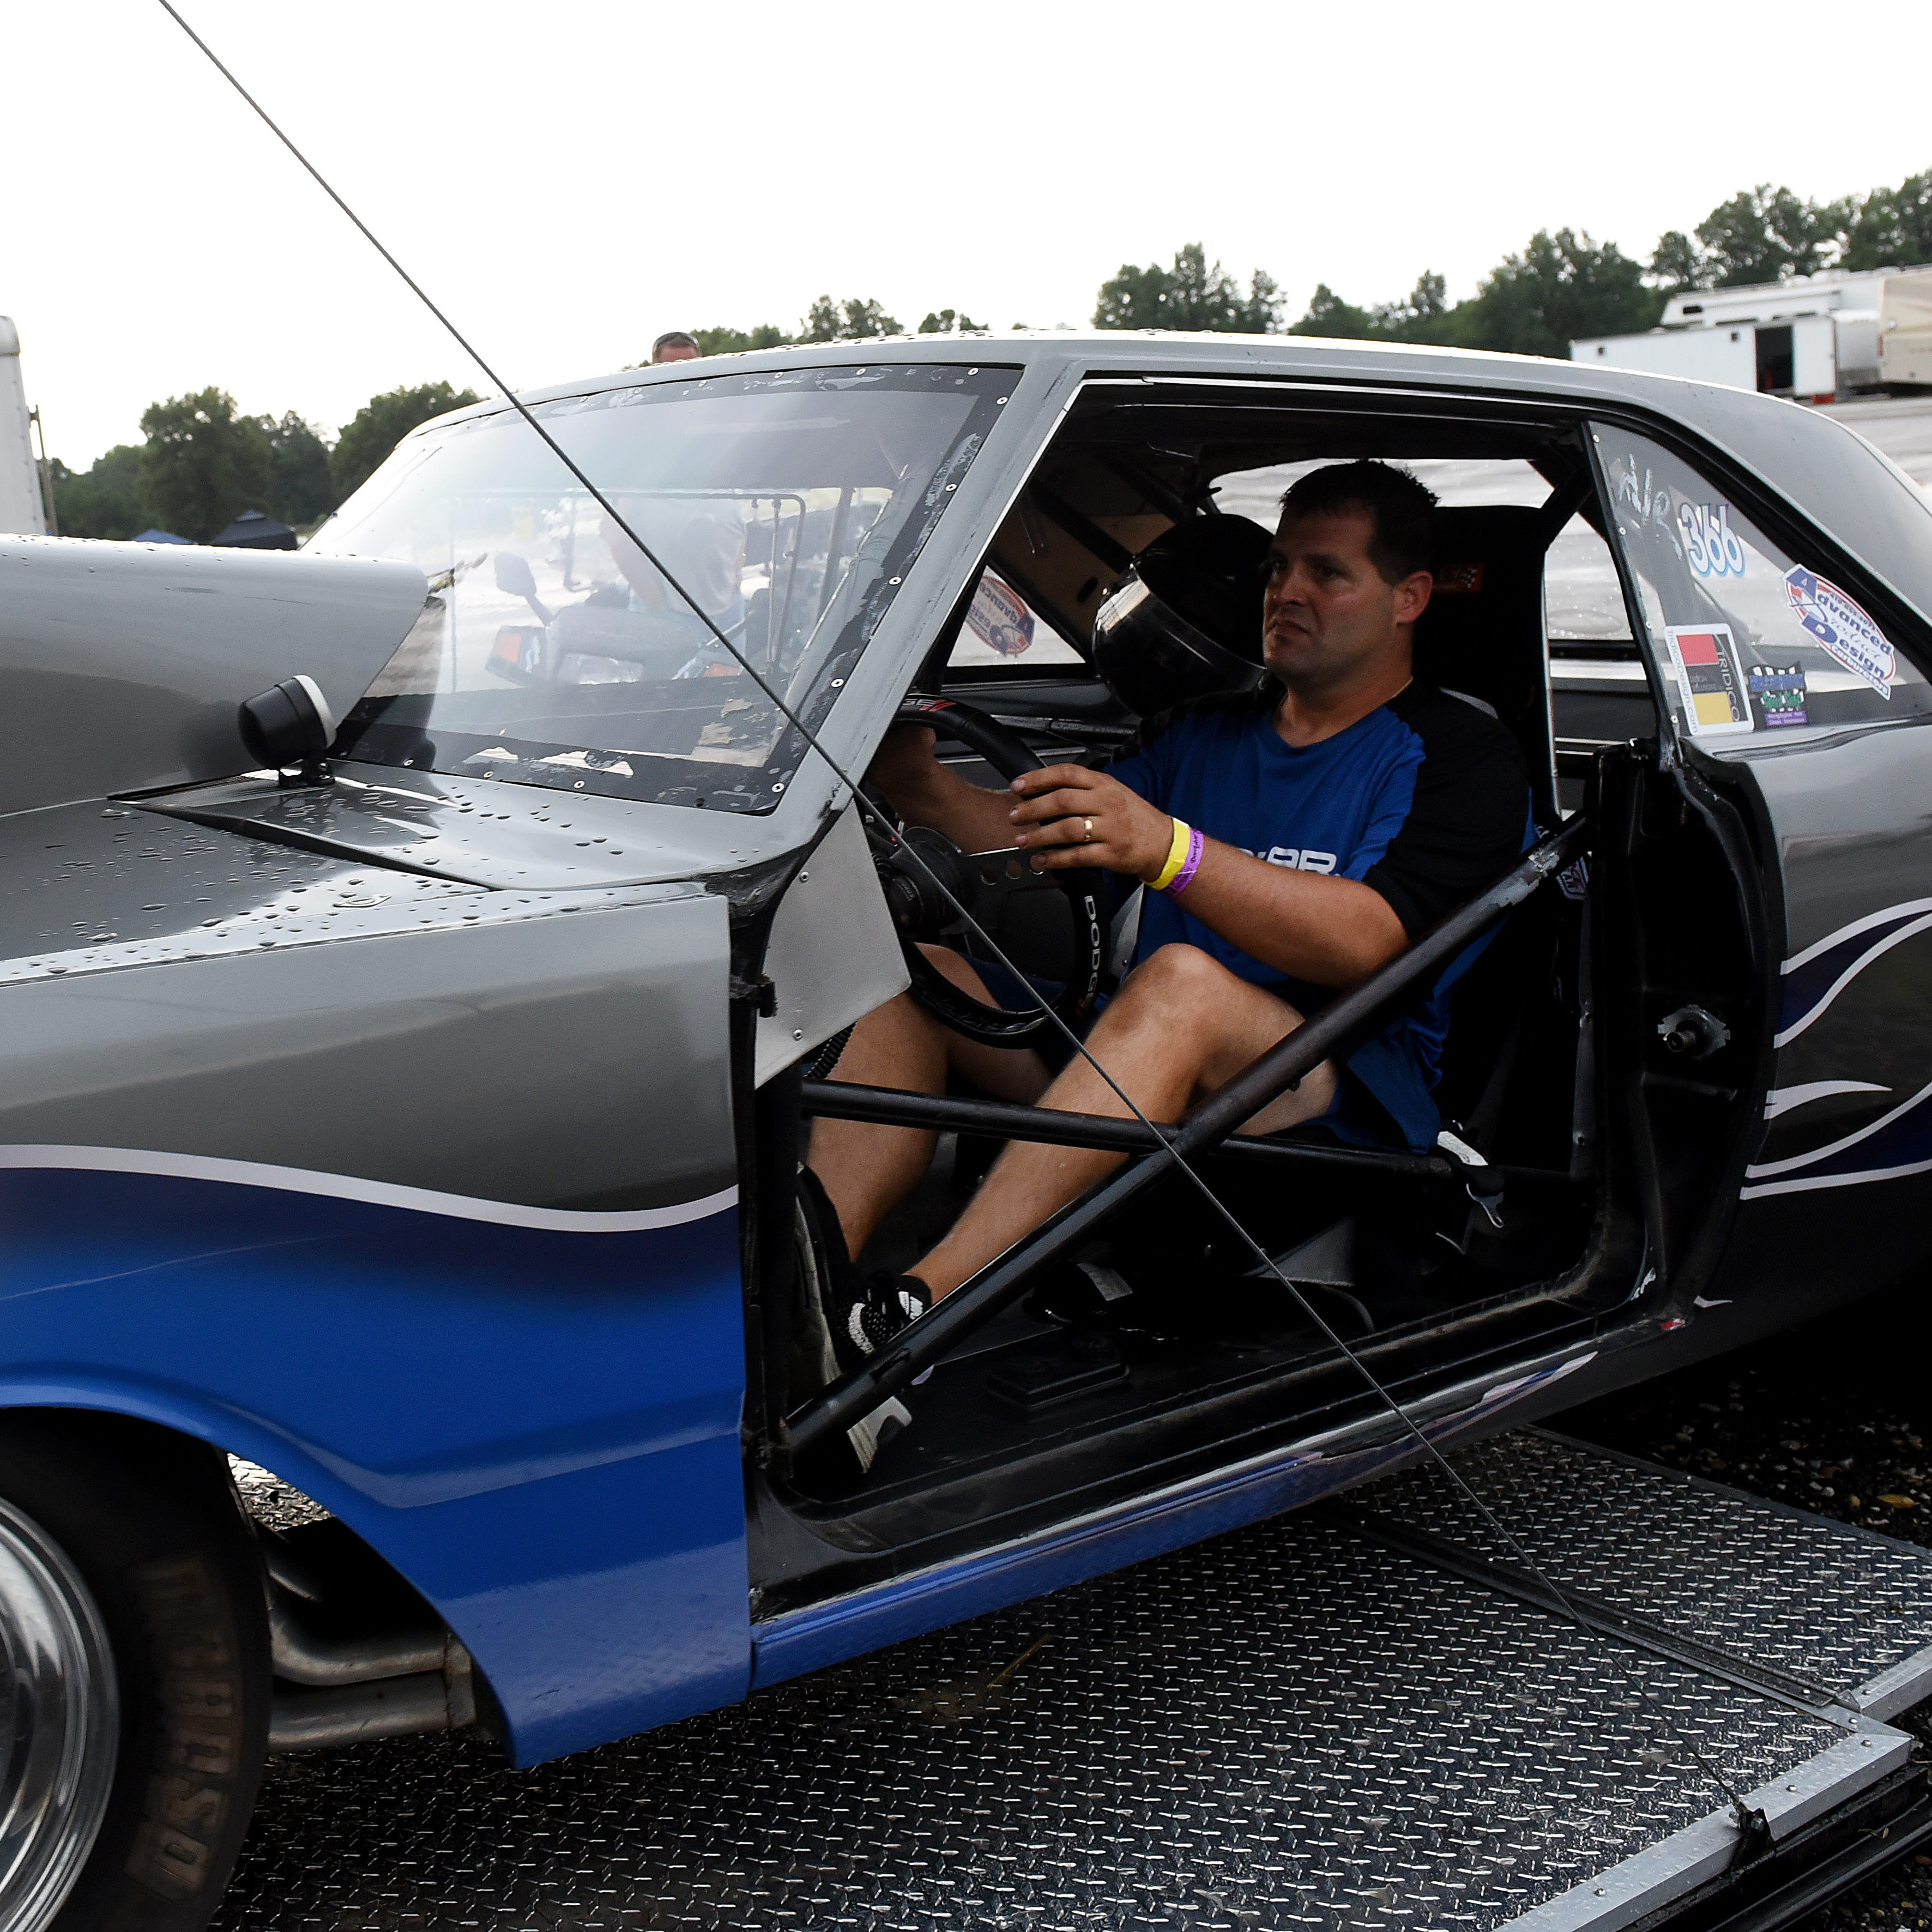 Mopar enthusiasts enjoy being part of action, walking down memory lane